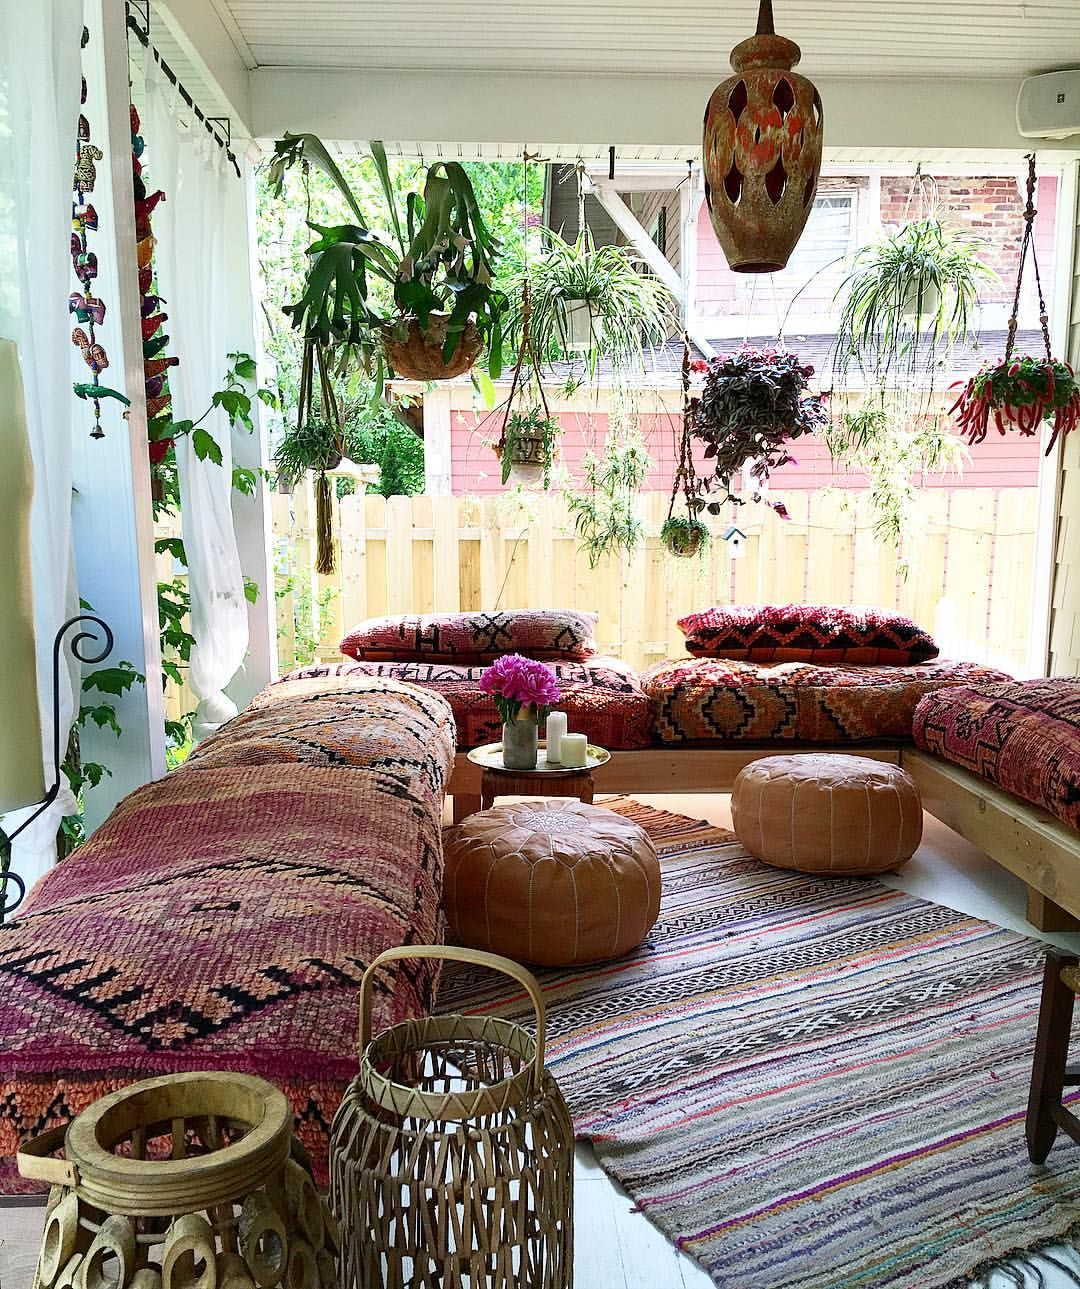 pin on perfect home essentials on hippie kitchen ideas boho chic id=68013